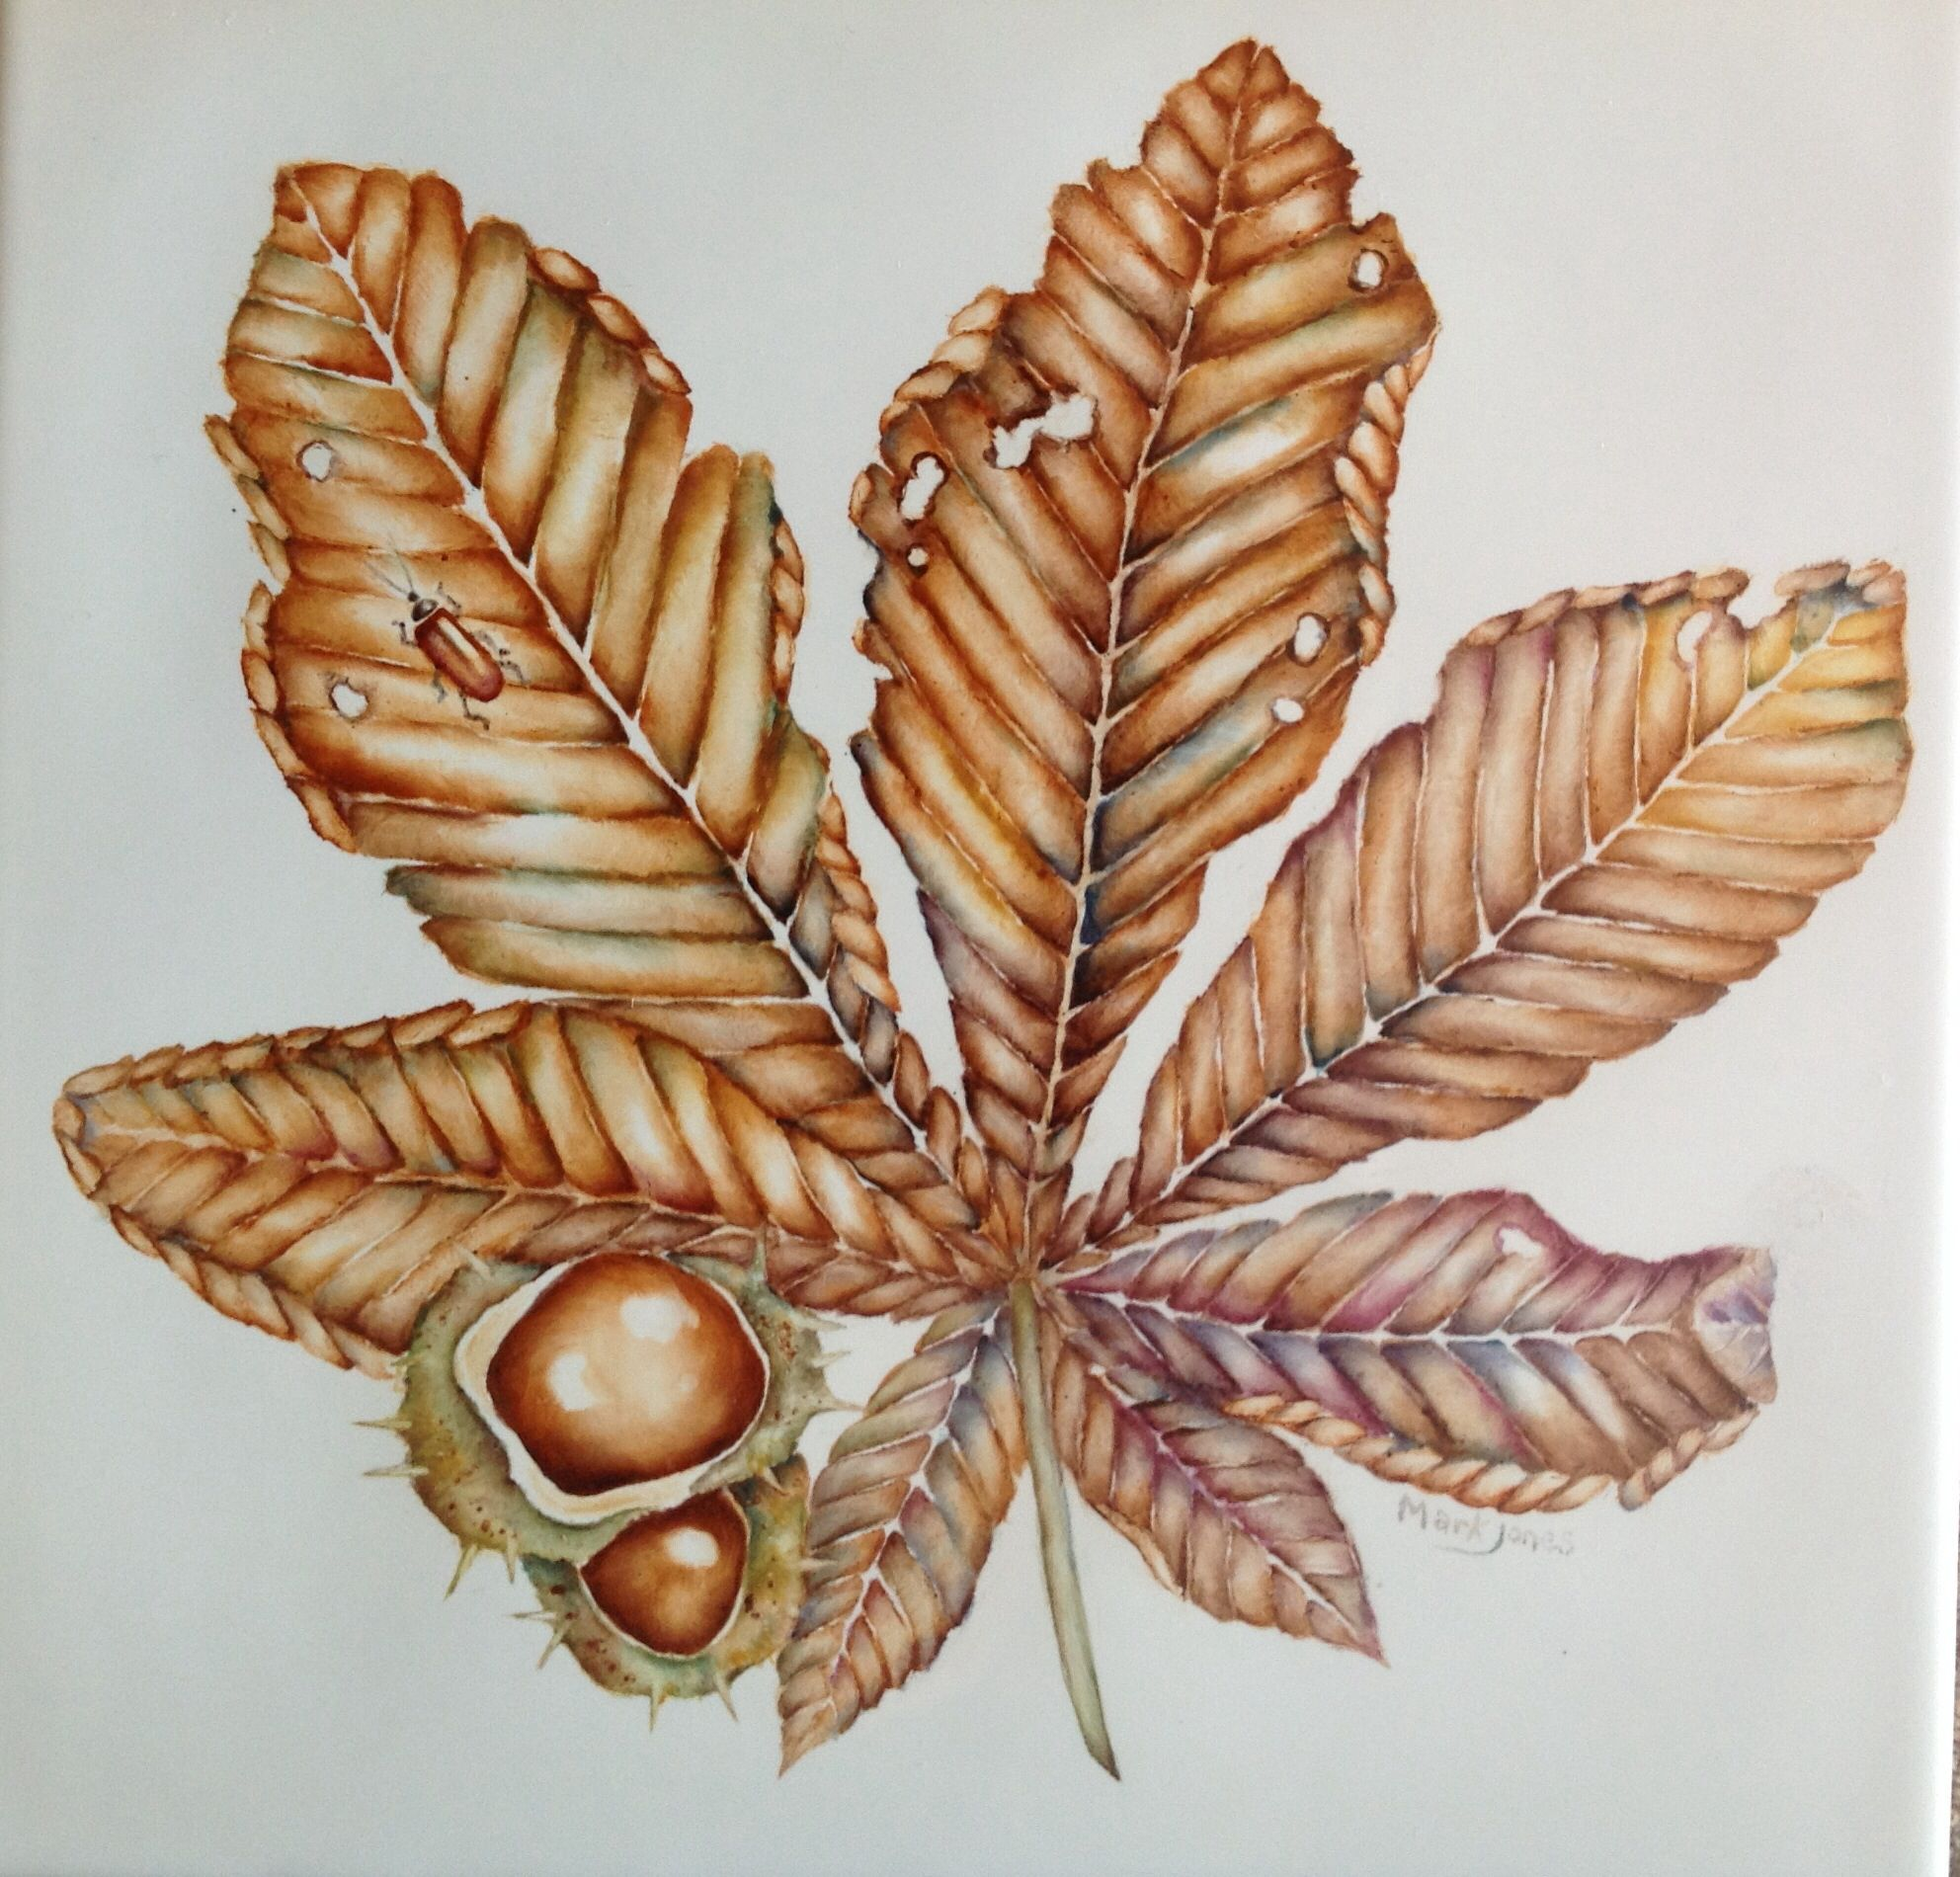 Golden horse chestnut painted on China by Mark Jones